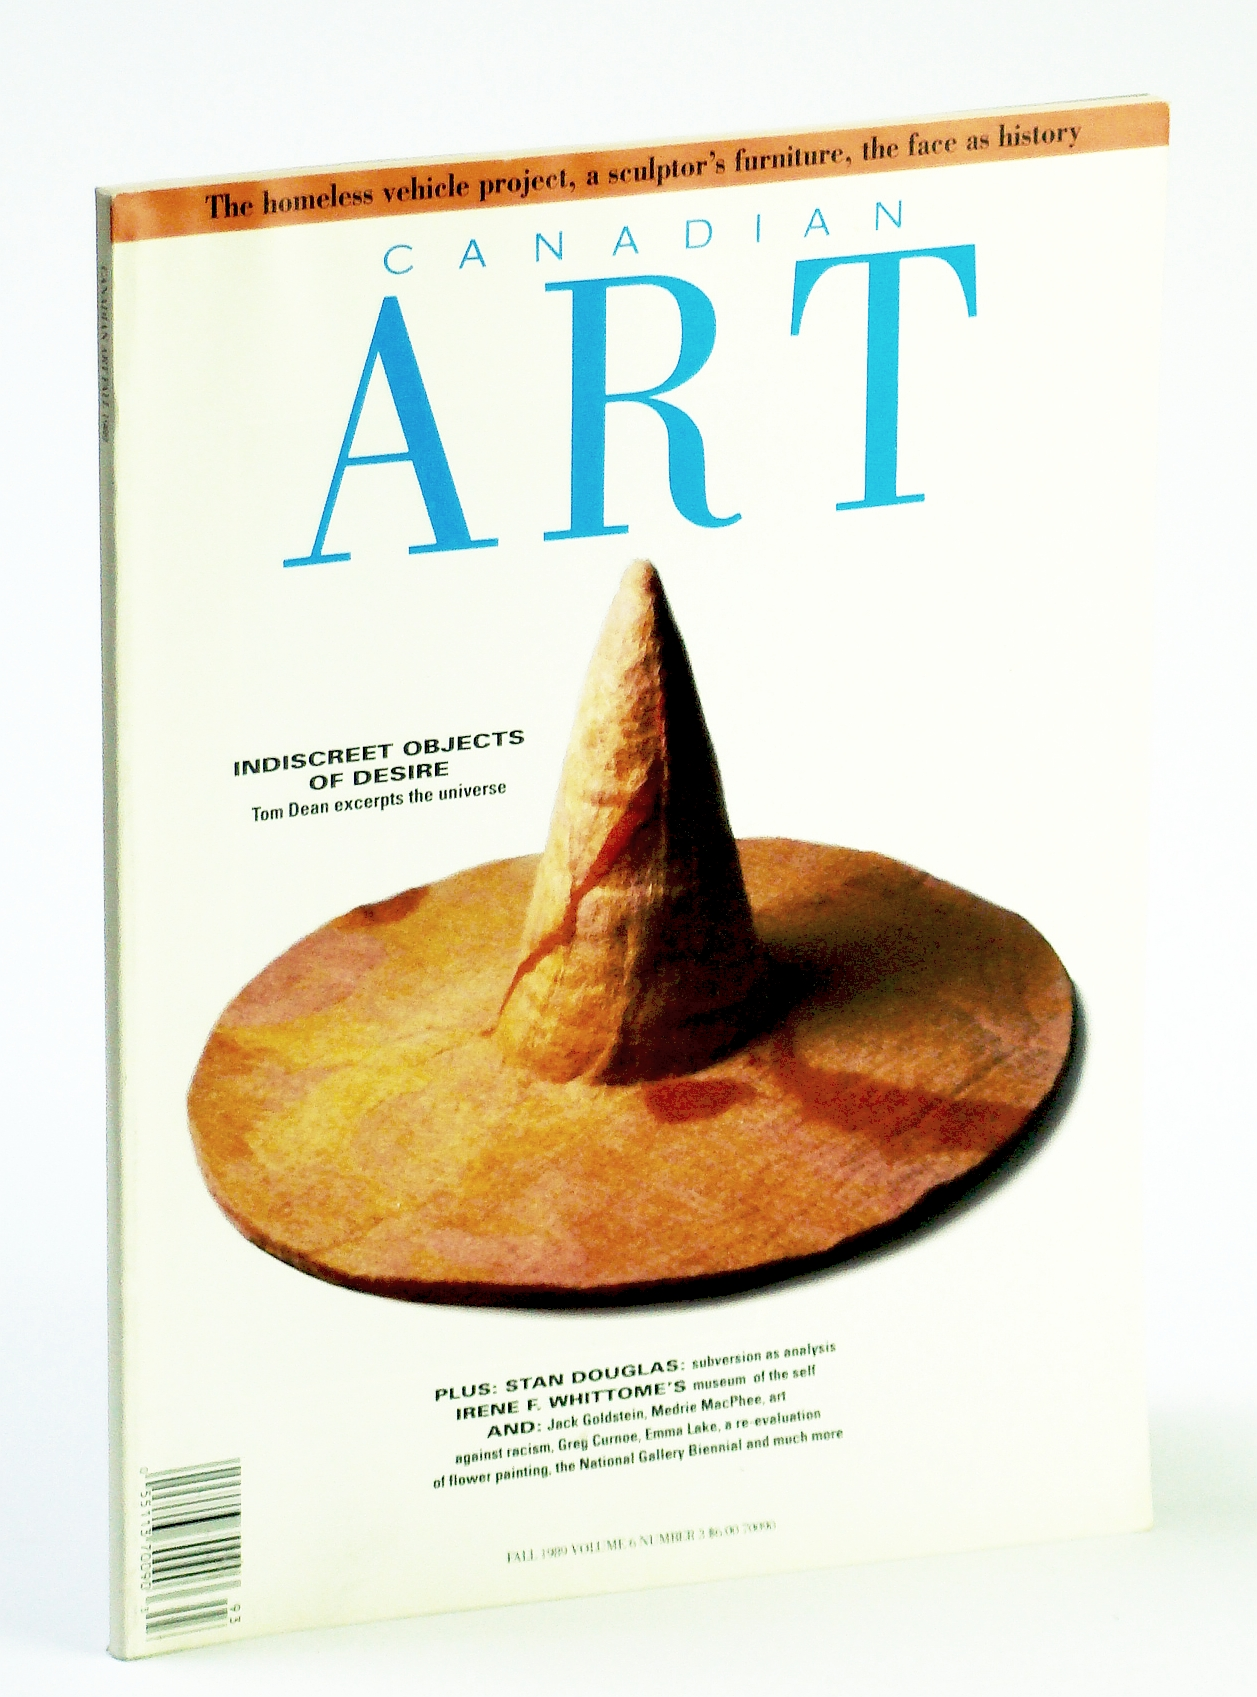 Image for Canadian Art (Magazine), Fall 1989, Volume 6, Number 3 - The Homeless Vehicle Project / A Sculptor's Furniture / The Face as History